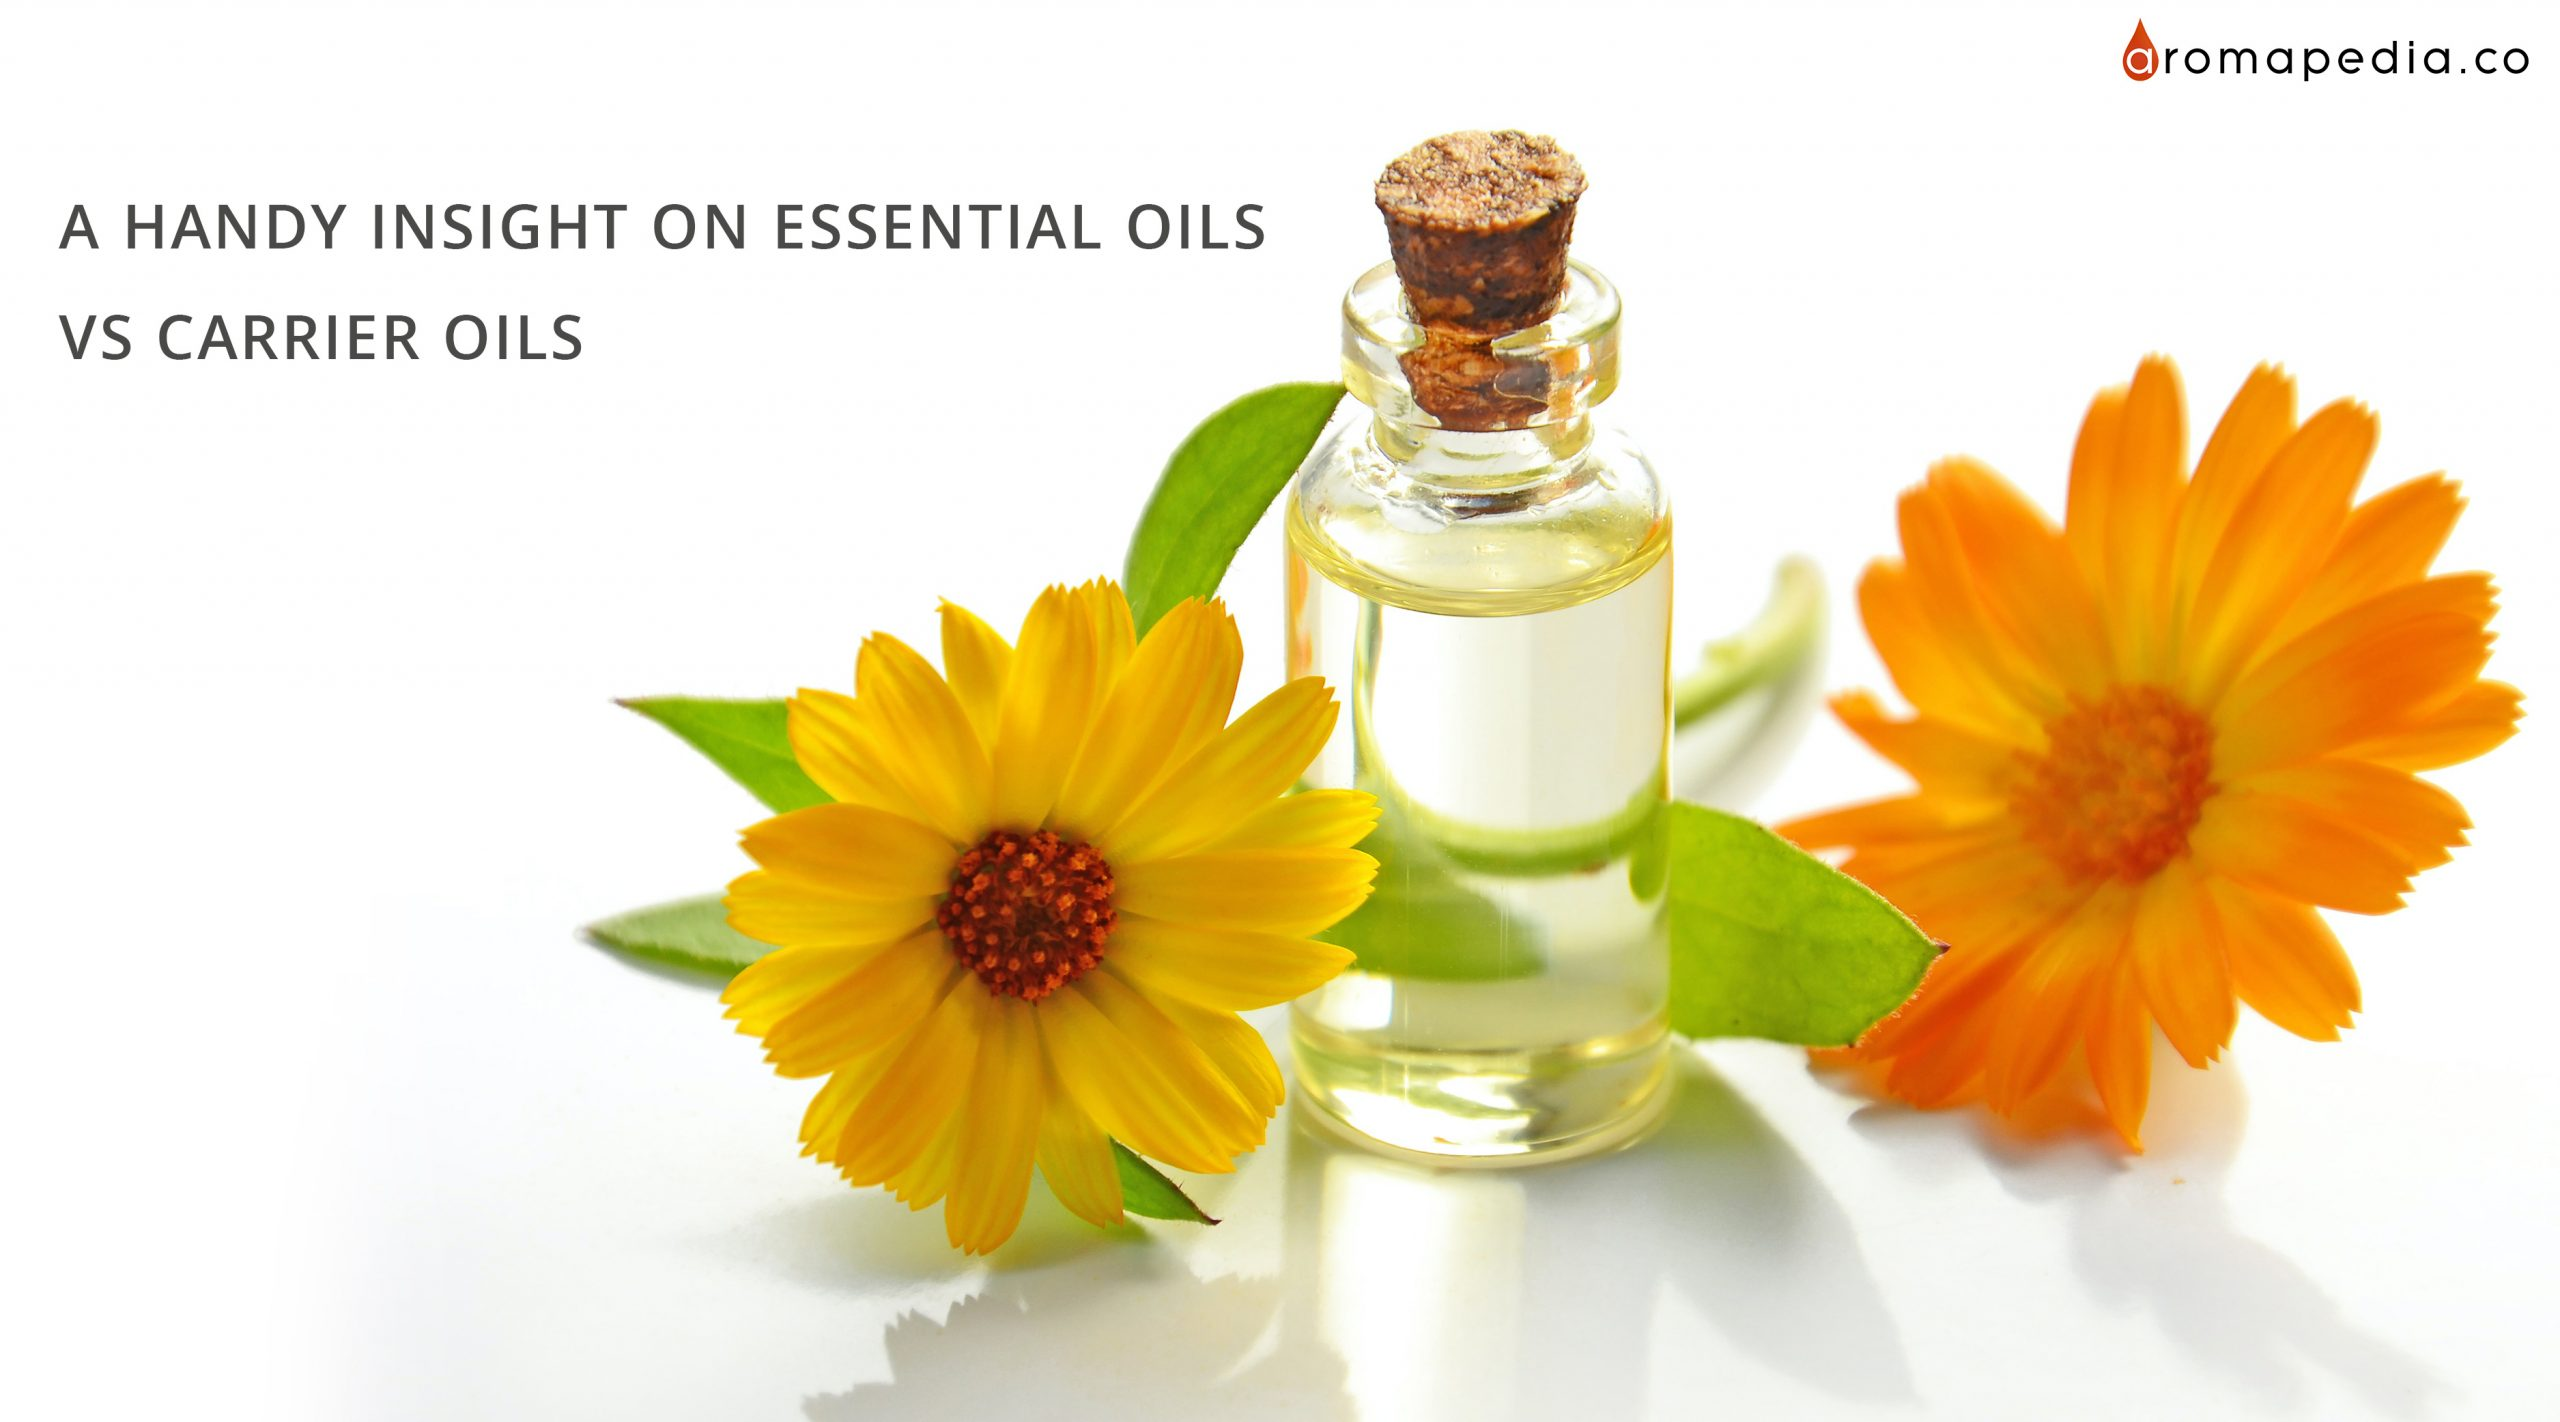 A-Handy-Insight-On-ESSENTIAL-OILS-Vs-CARRIER-OILS